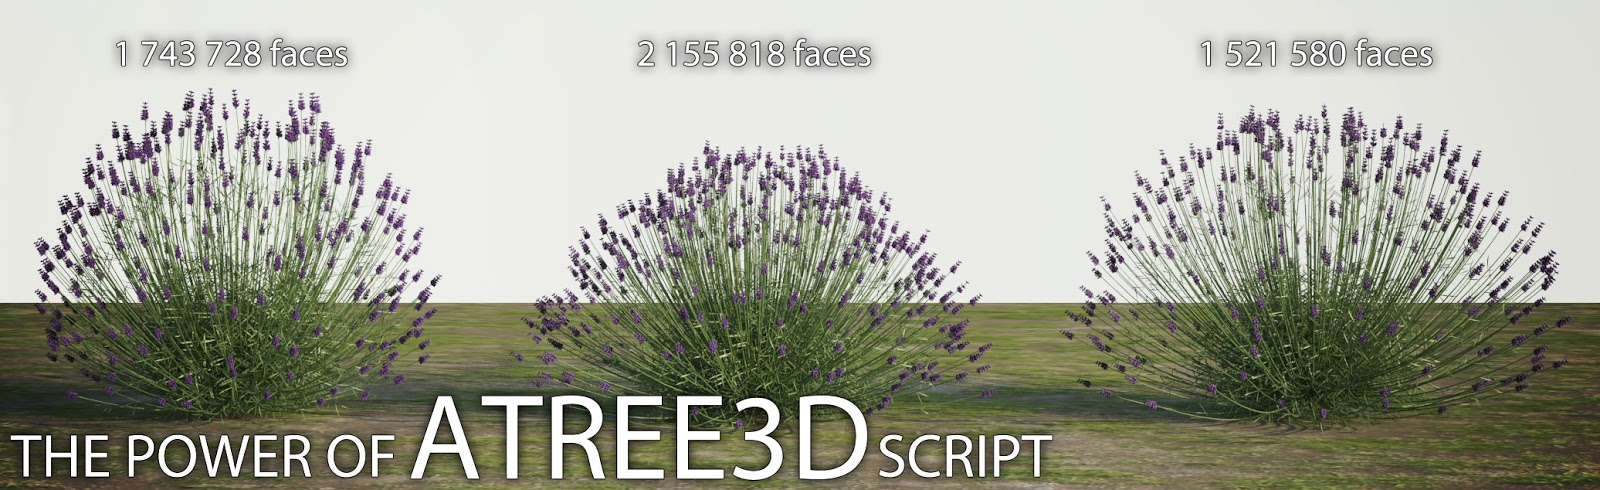 FreeDeeLab / TrzyDeLab: Freebies - new HQ 3d models of Lavender